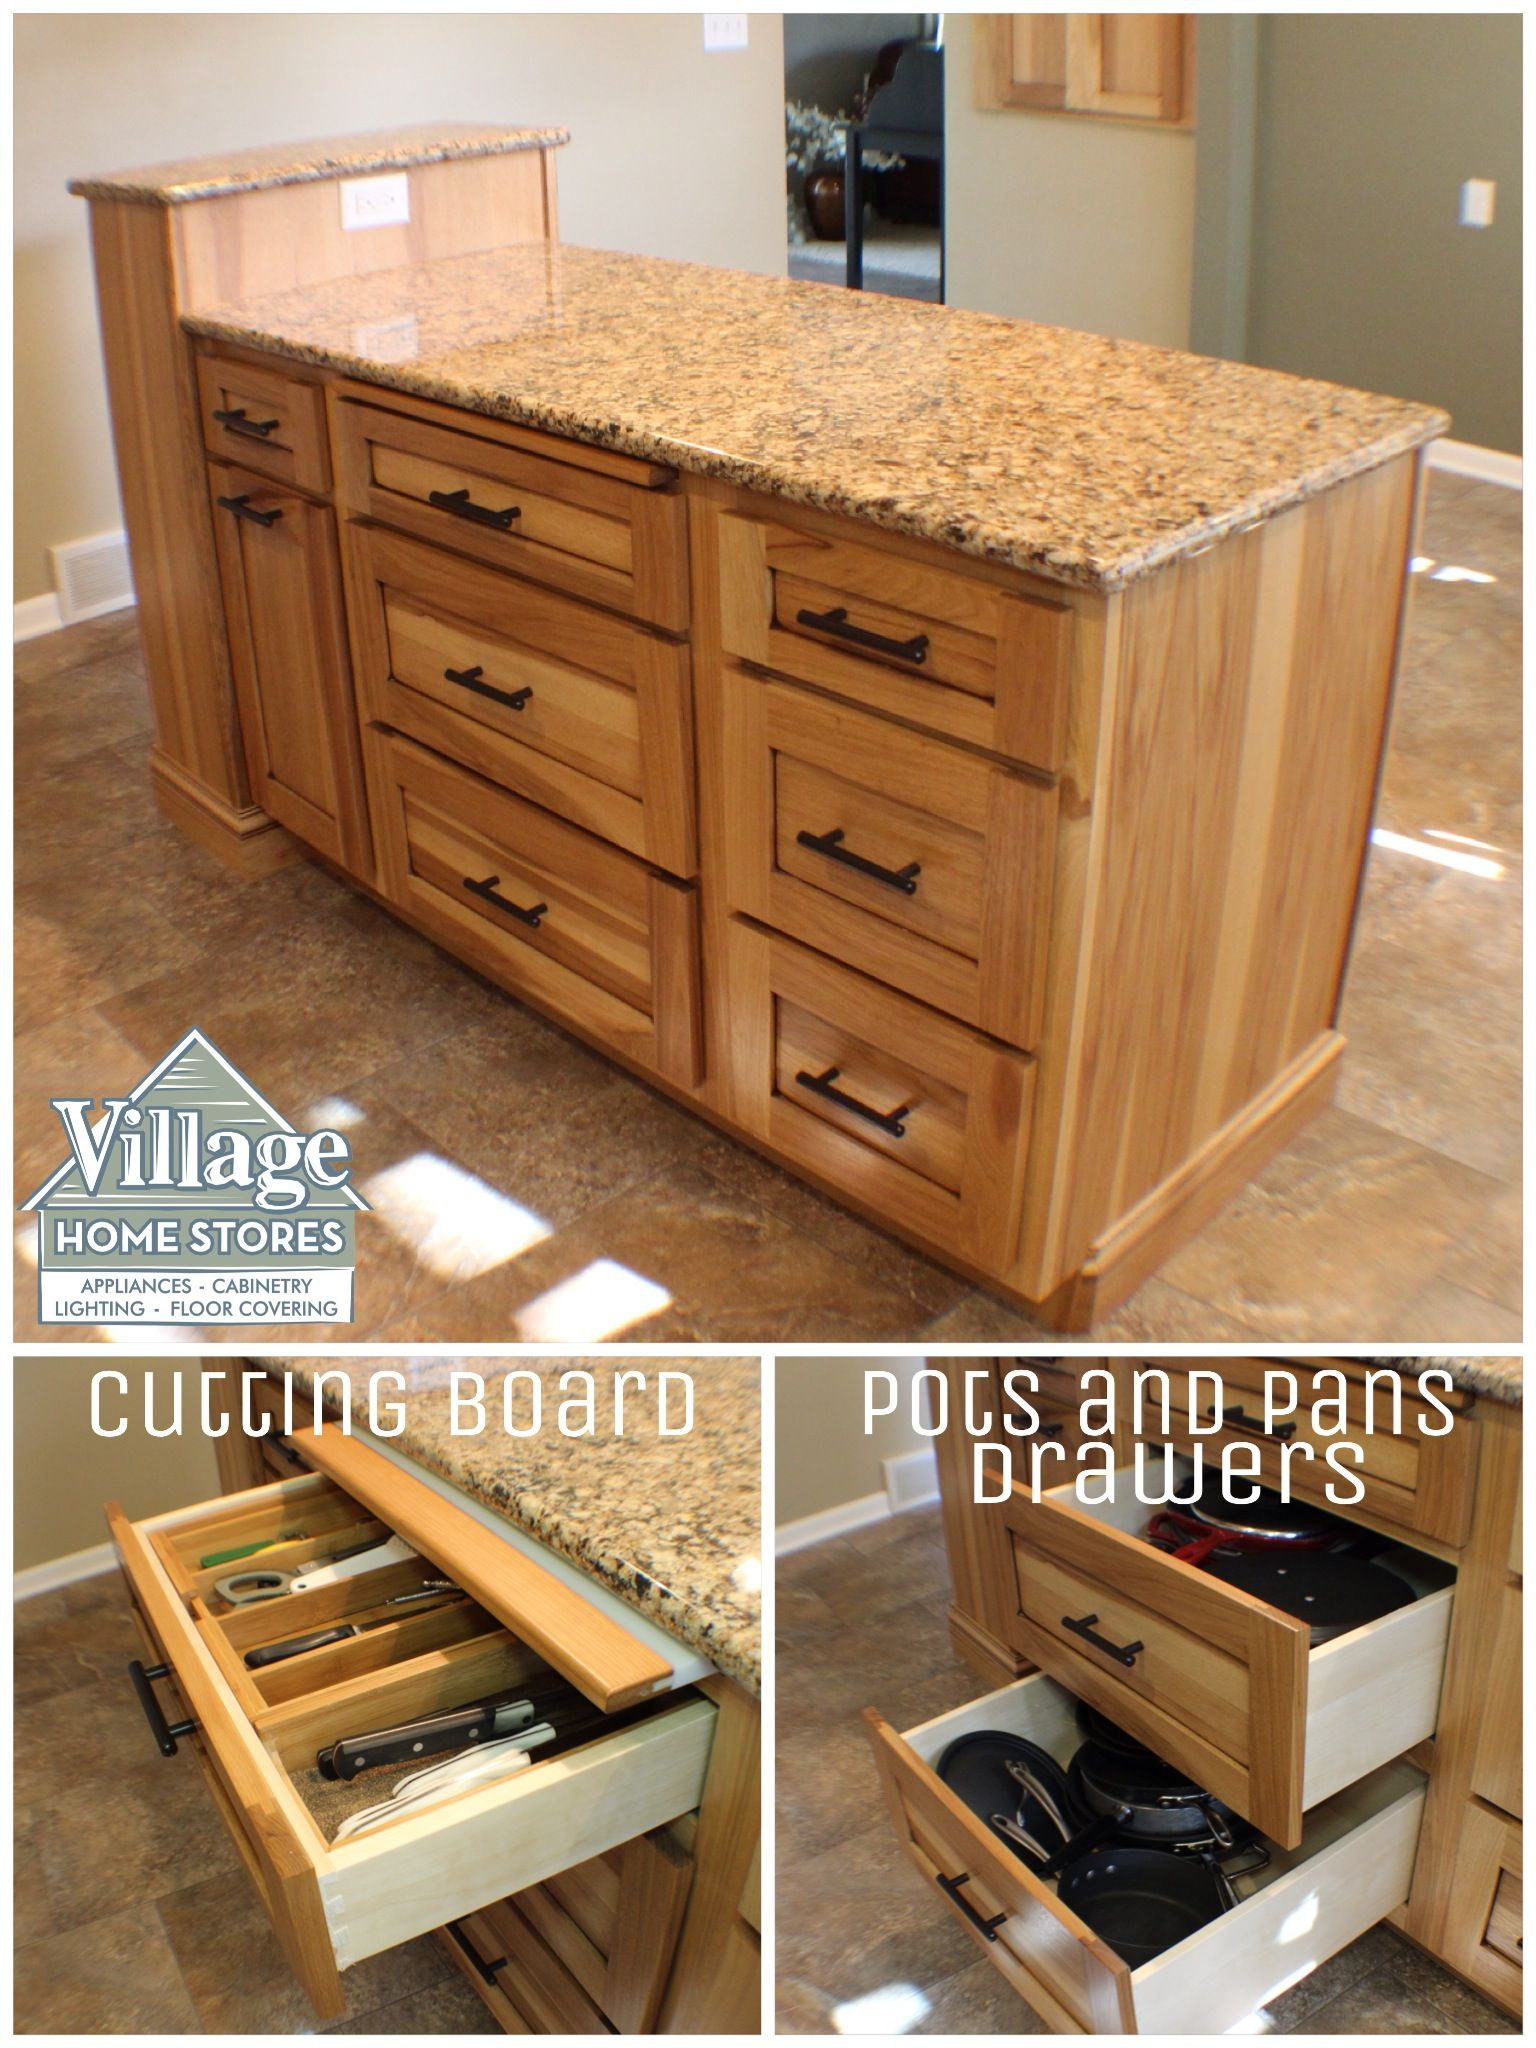 Large drawers for #pots and #pans #storage in this kitchen island ...